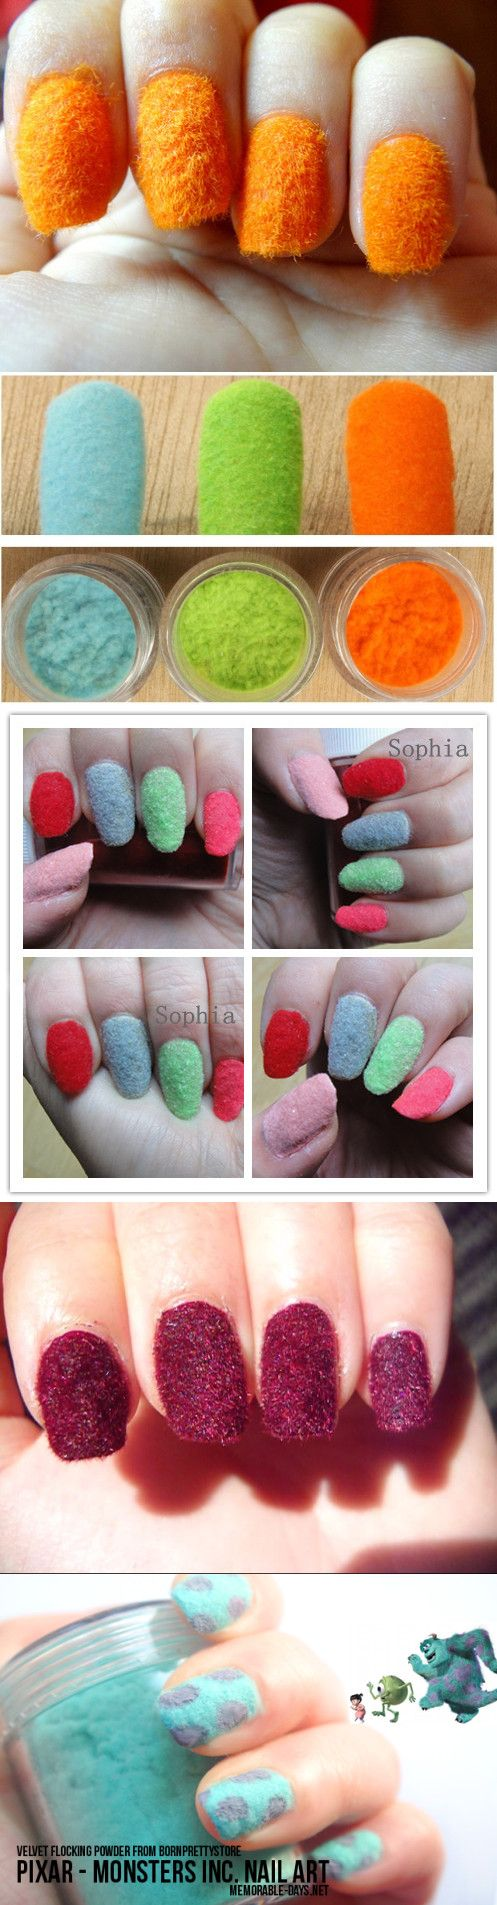 $2.99 1pc Fun Flocking Velvet Powder Manicure Nail Art Nail Polish- 14 colors - BornPrettyStore.com